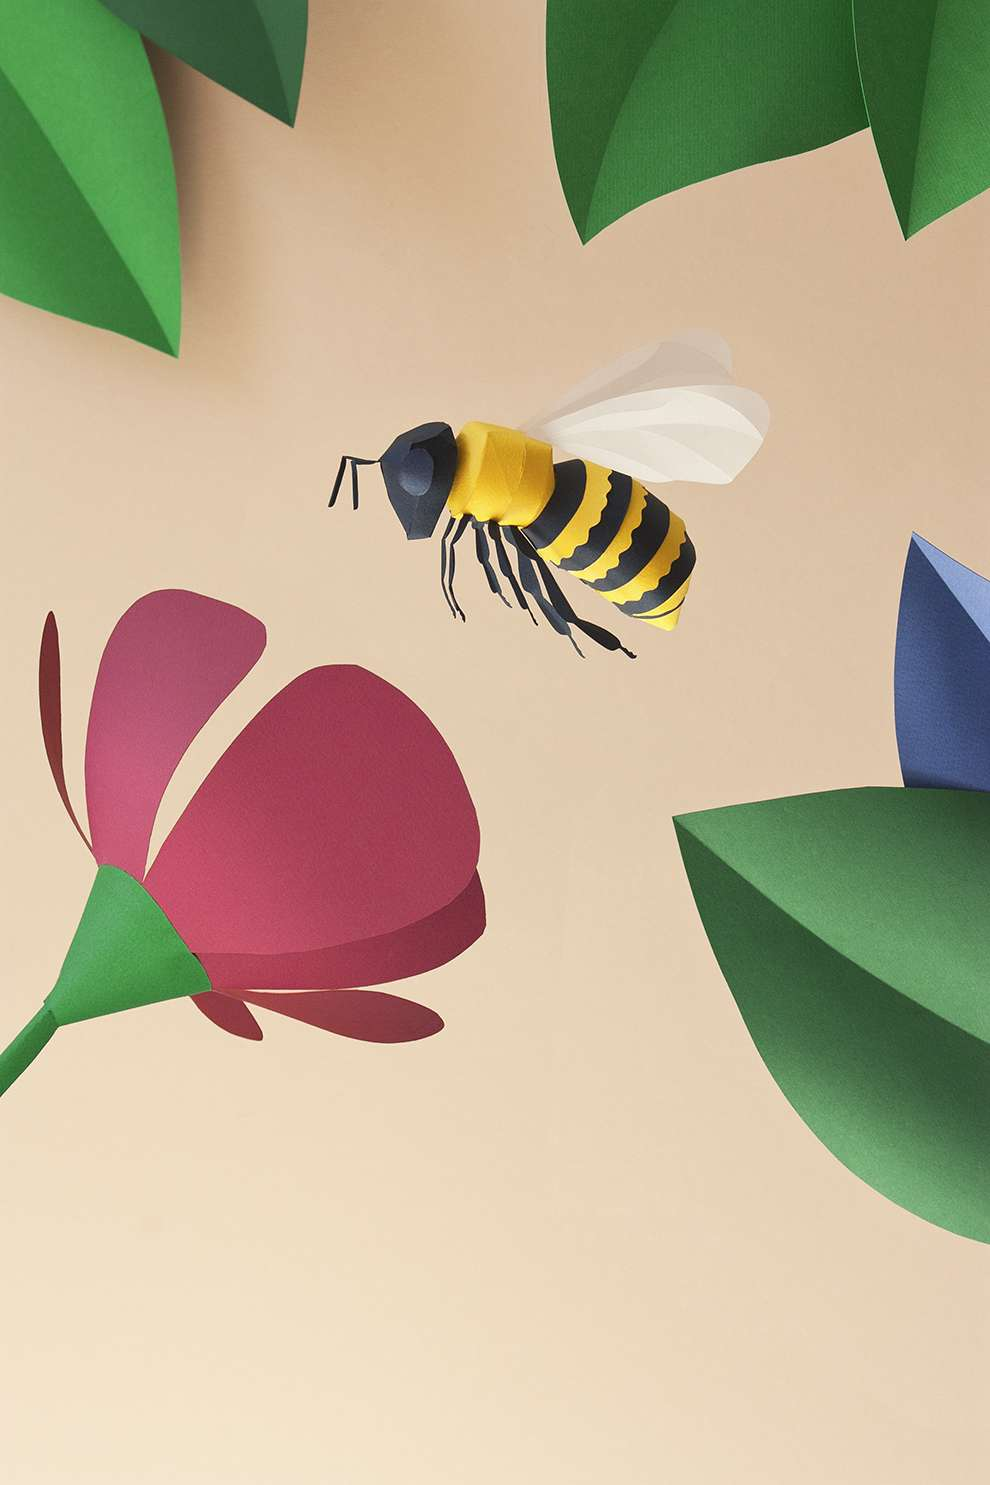 WRK, Paper sculpture illustration of a bee gathering nectar out of a flower